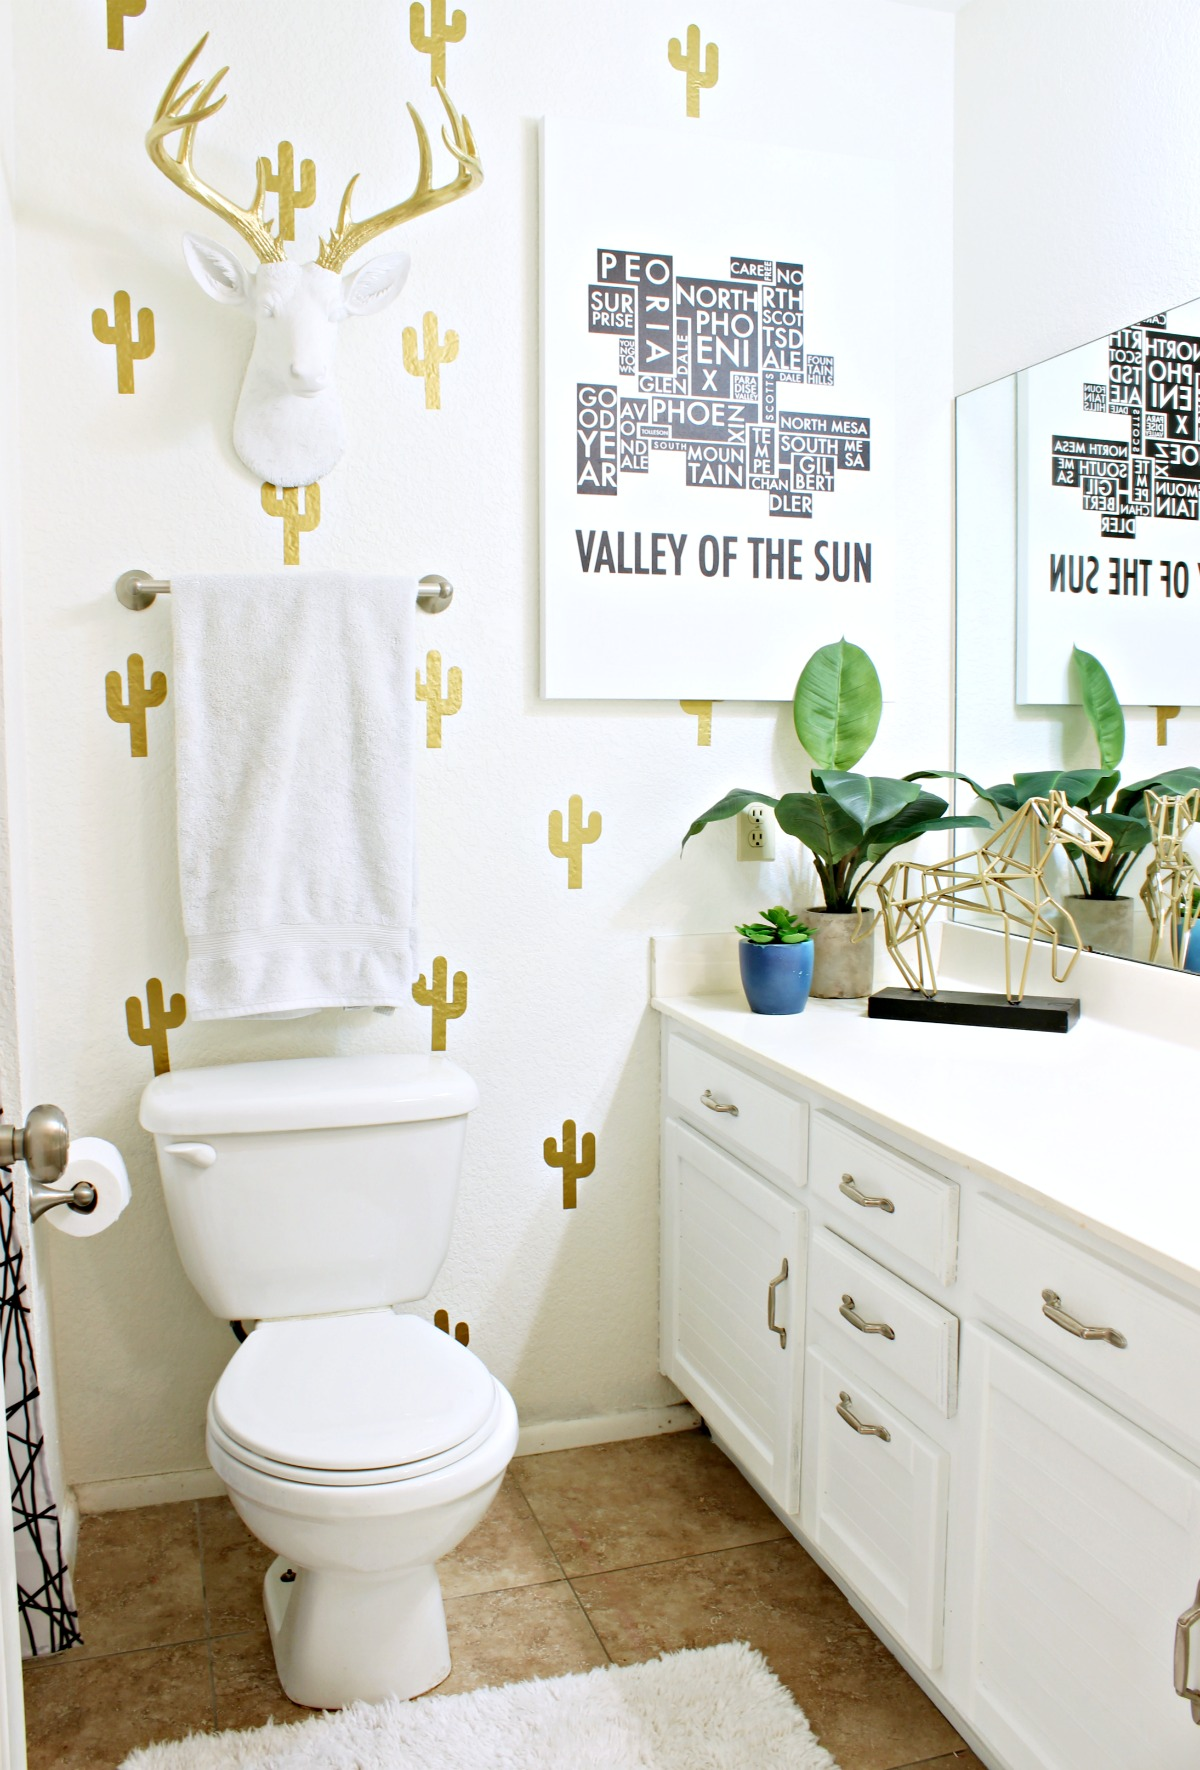 How To Paint A Bathroom Vanity Classy Clutter